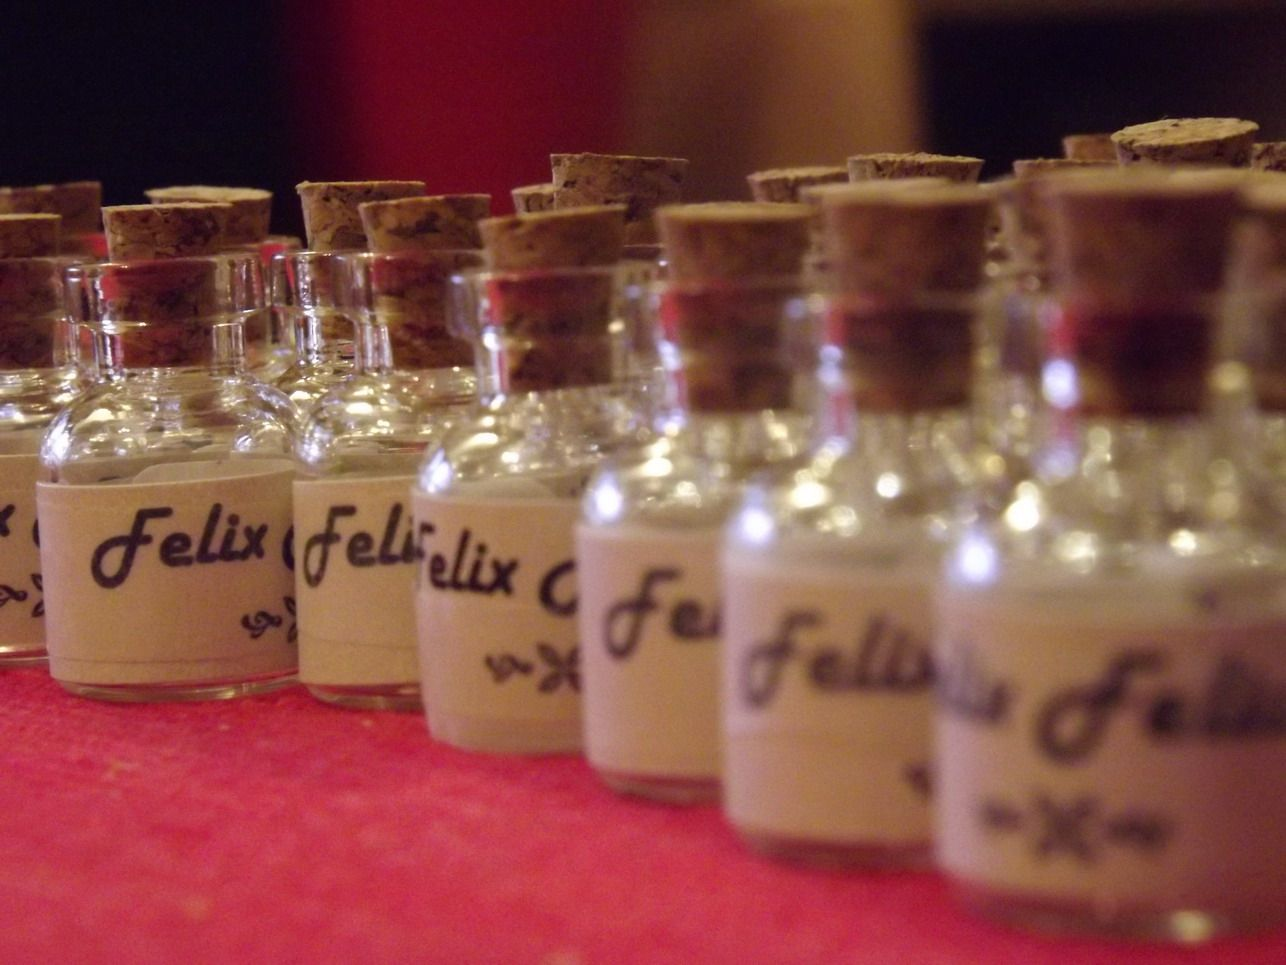 Felix Felicis bottles with labels on - FINALLY!!